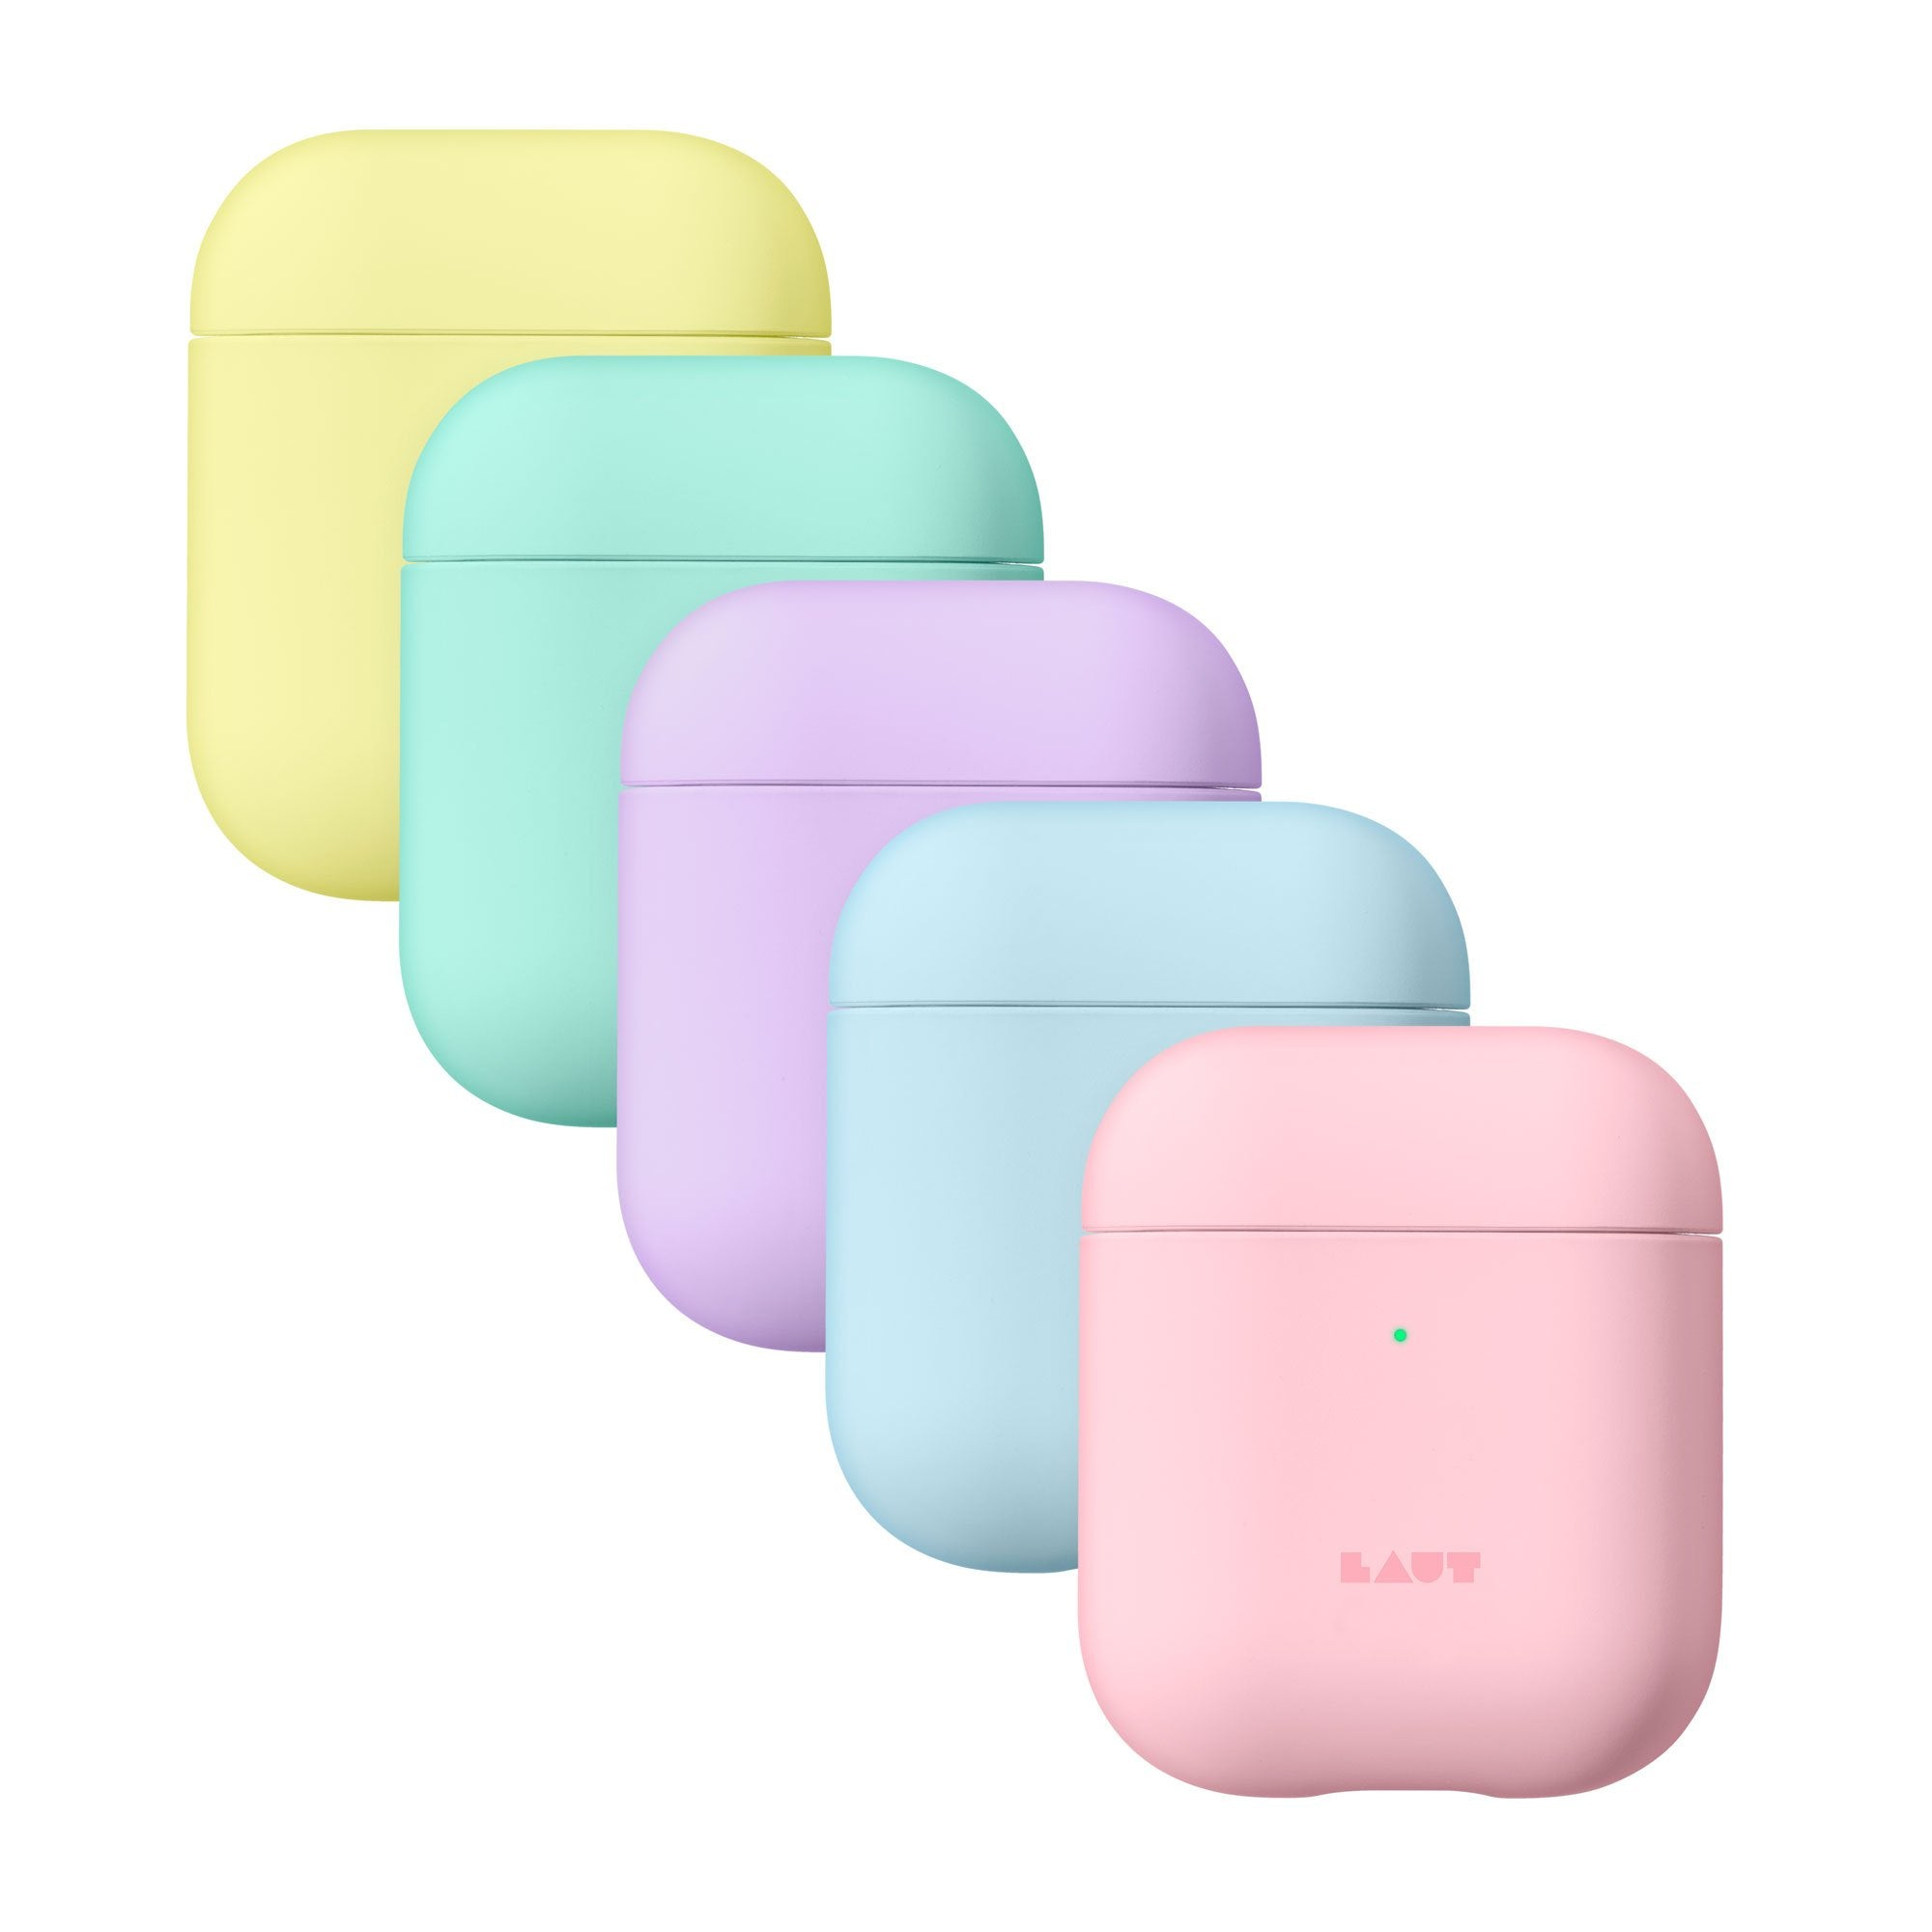 HUEX PASTELS for AirPods